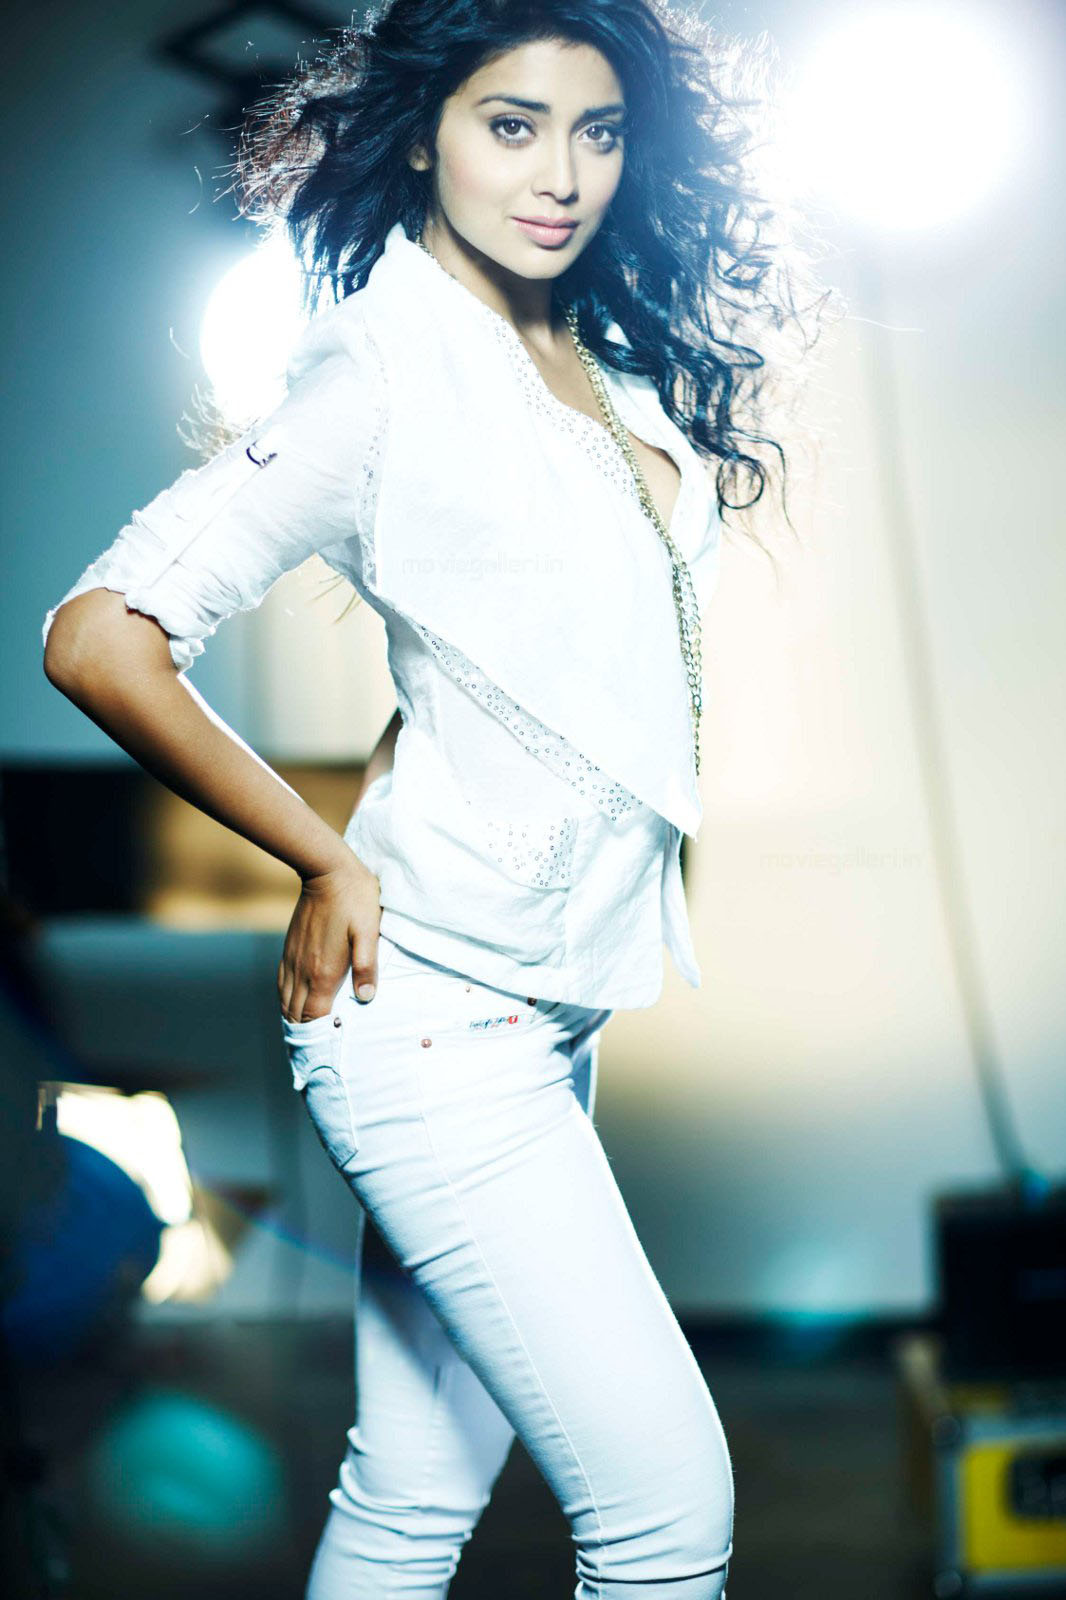 Shriya Saran in White Jeans 7 Top1 - Shriya Saran Hot Photoshoot in White Tops & Jeans